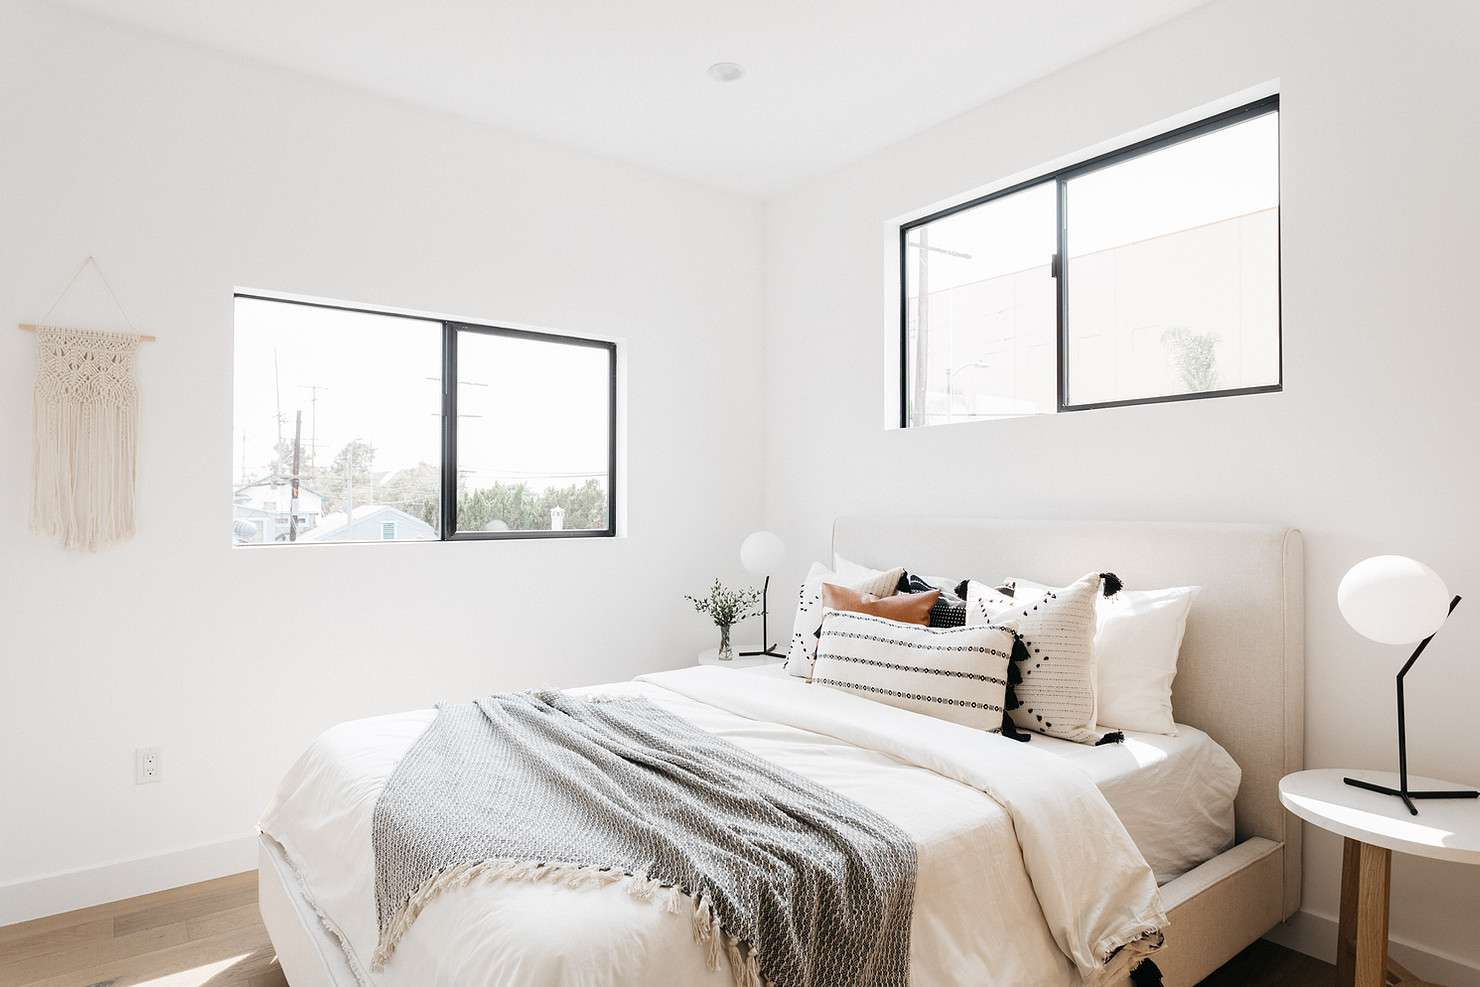 Small bedroom with bright windows